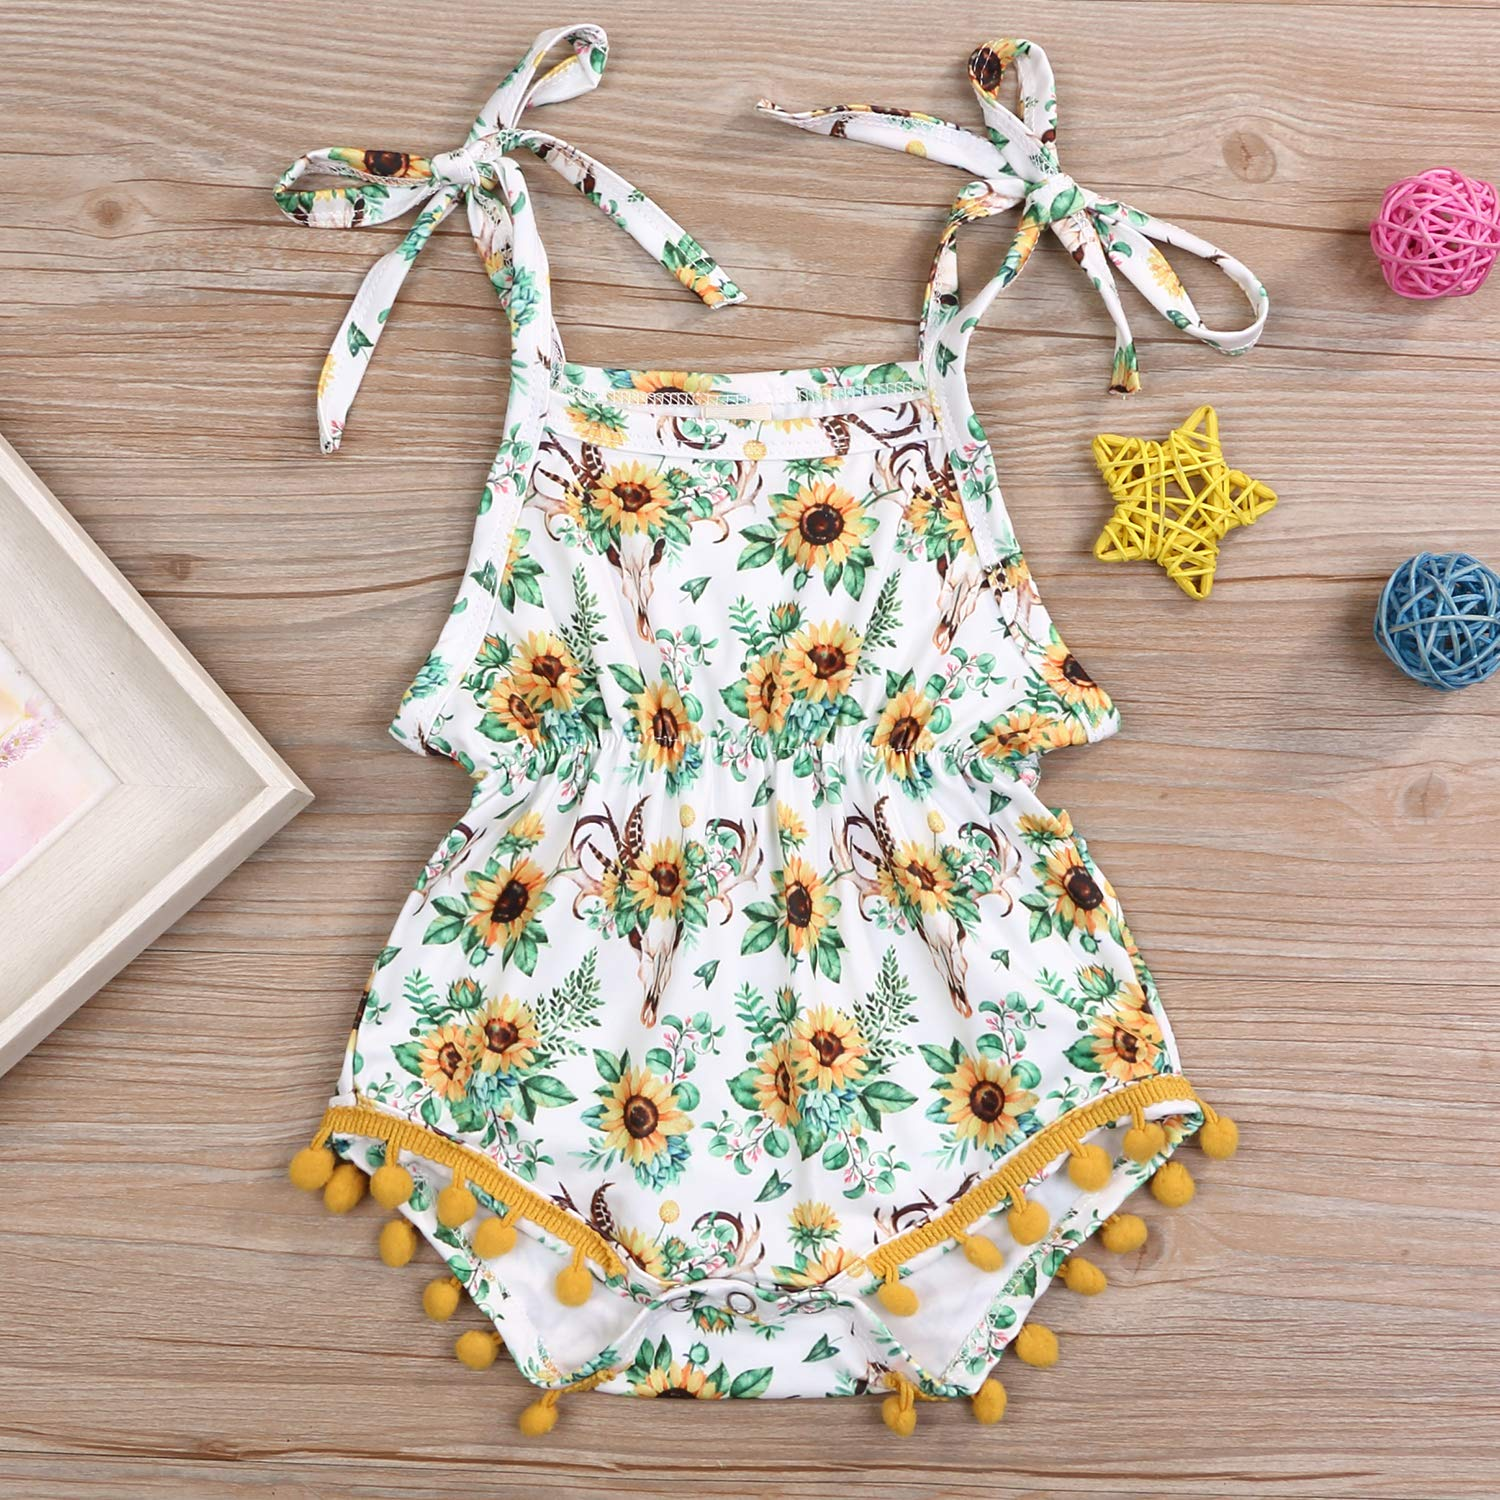 Newborn Baby Girl Floral Romper Strap Sunflower Jumpsuit Bodysuit Outfit Summer Clothes